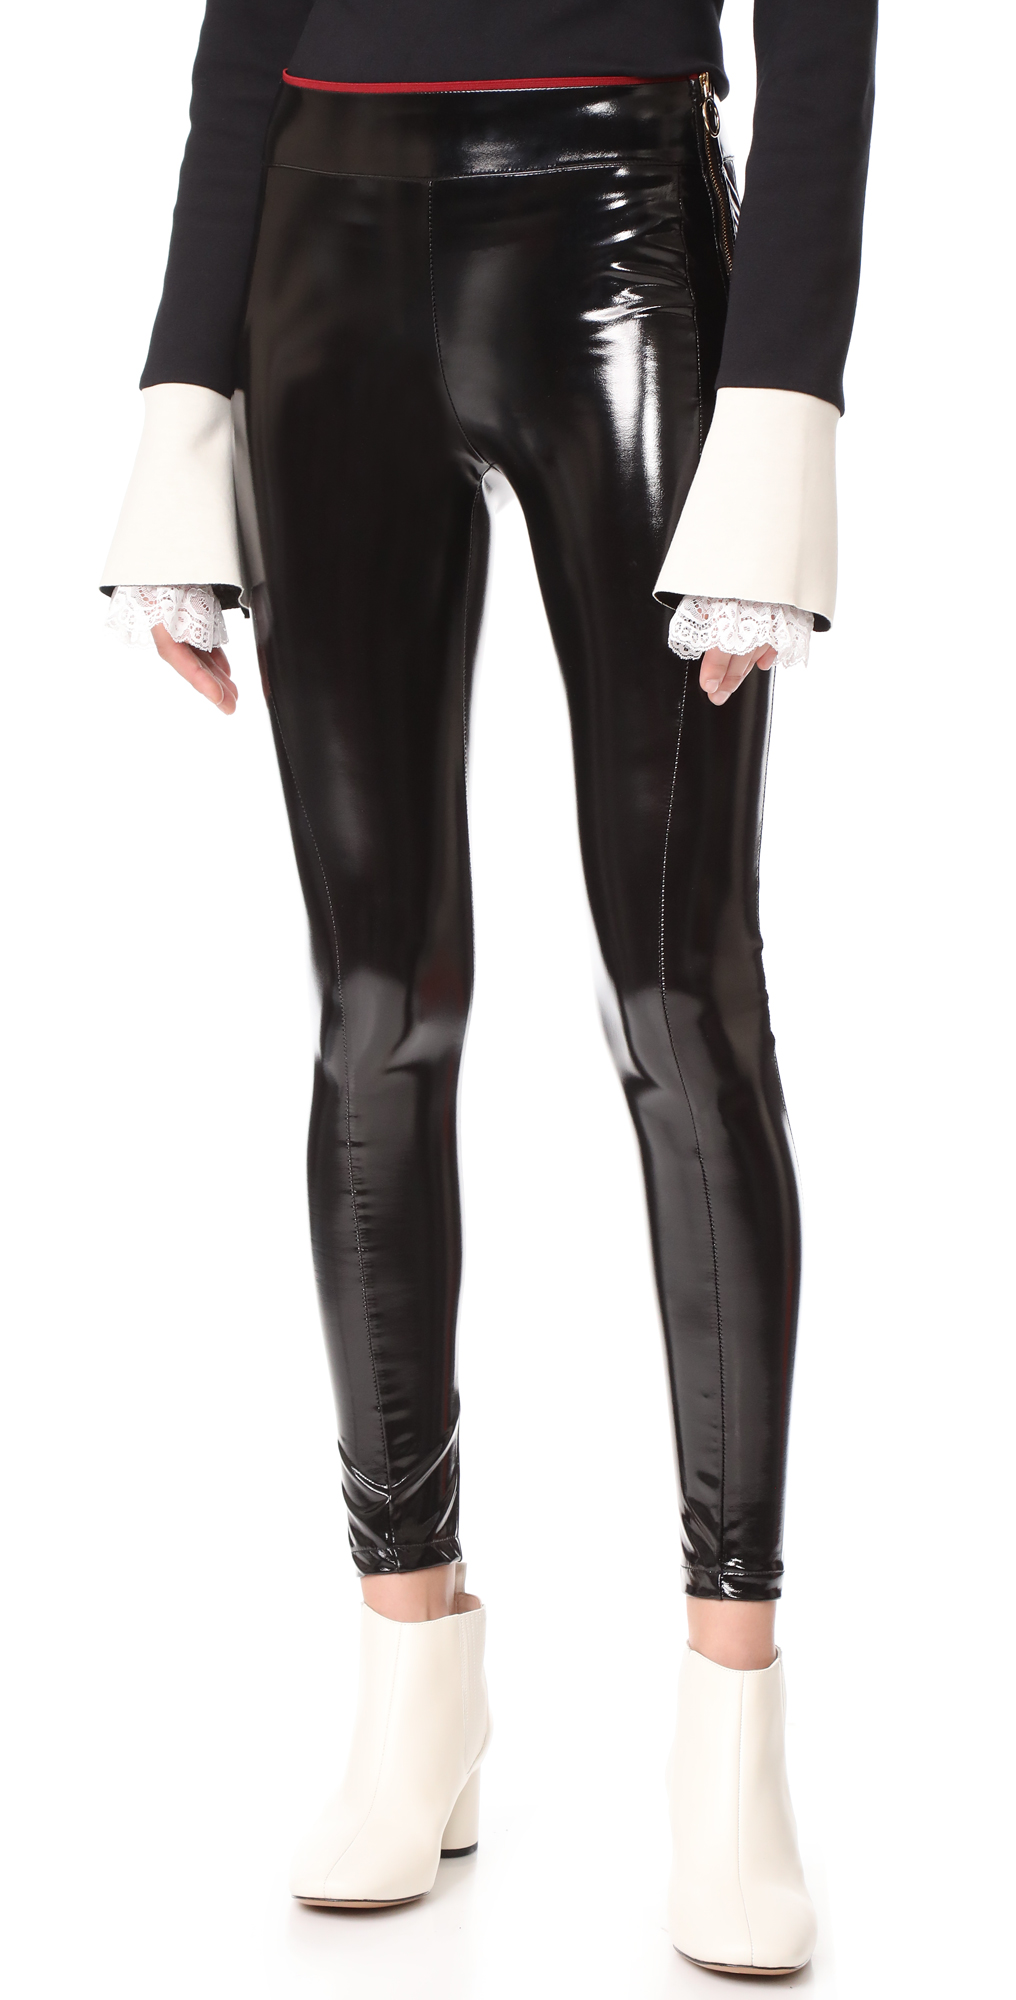 Second Skin Leggings Romanchic